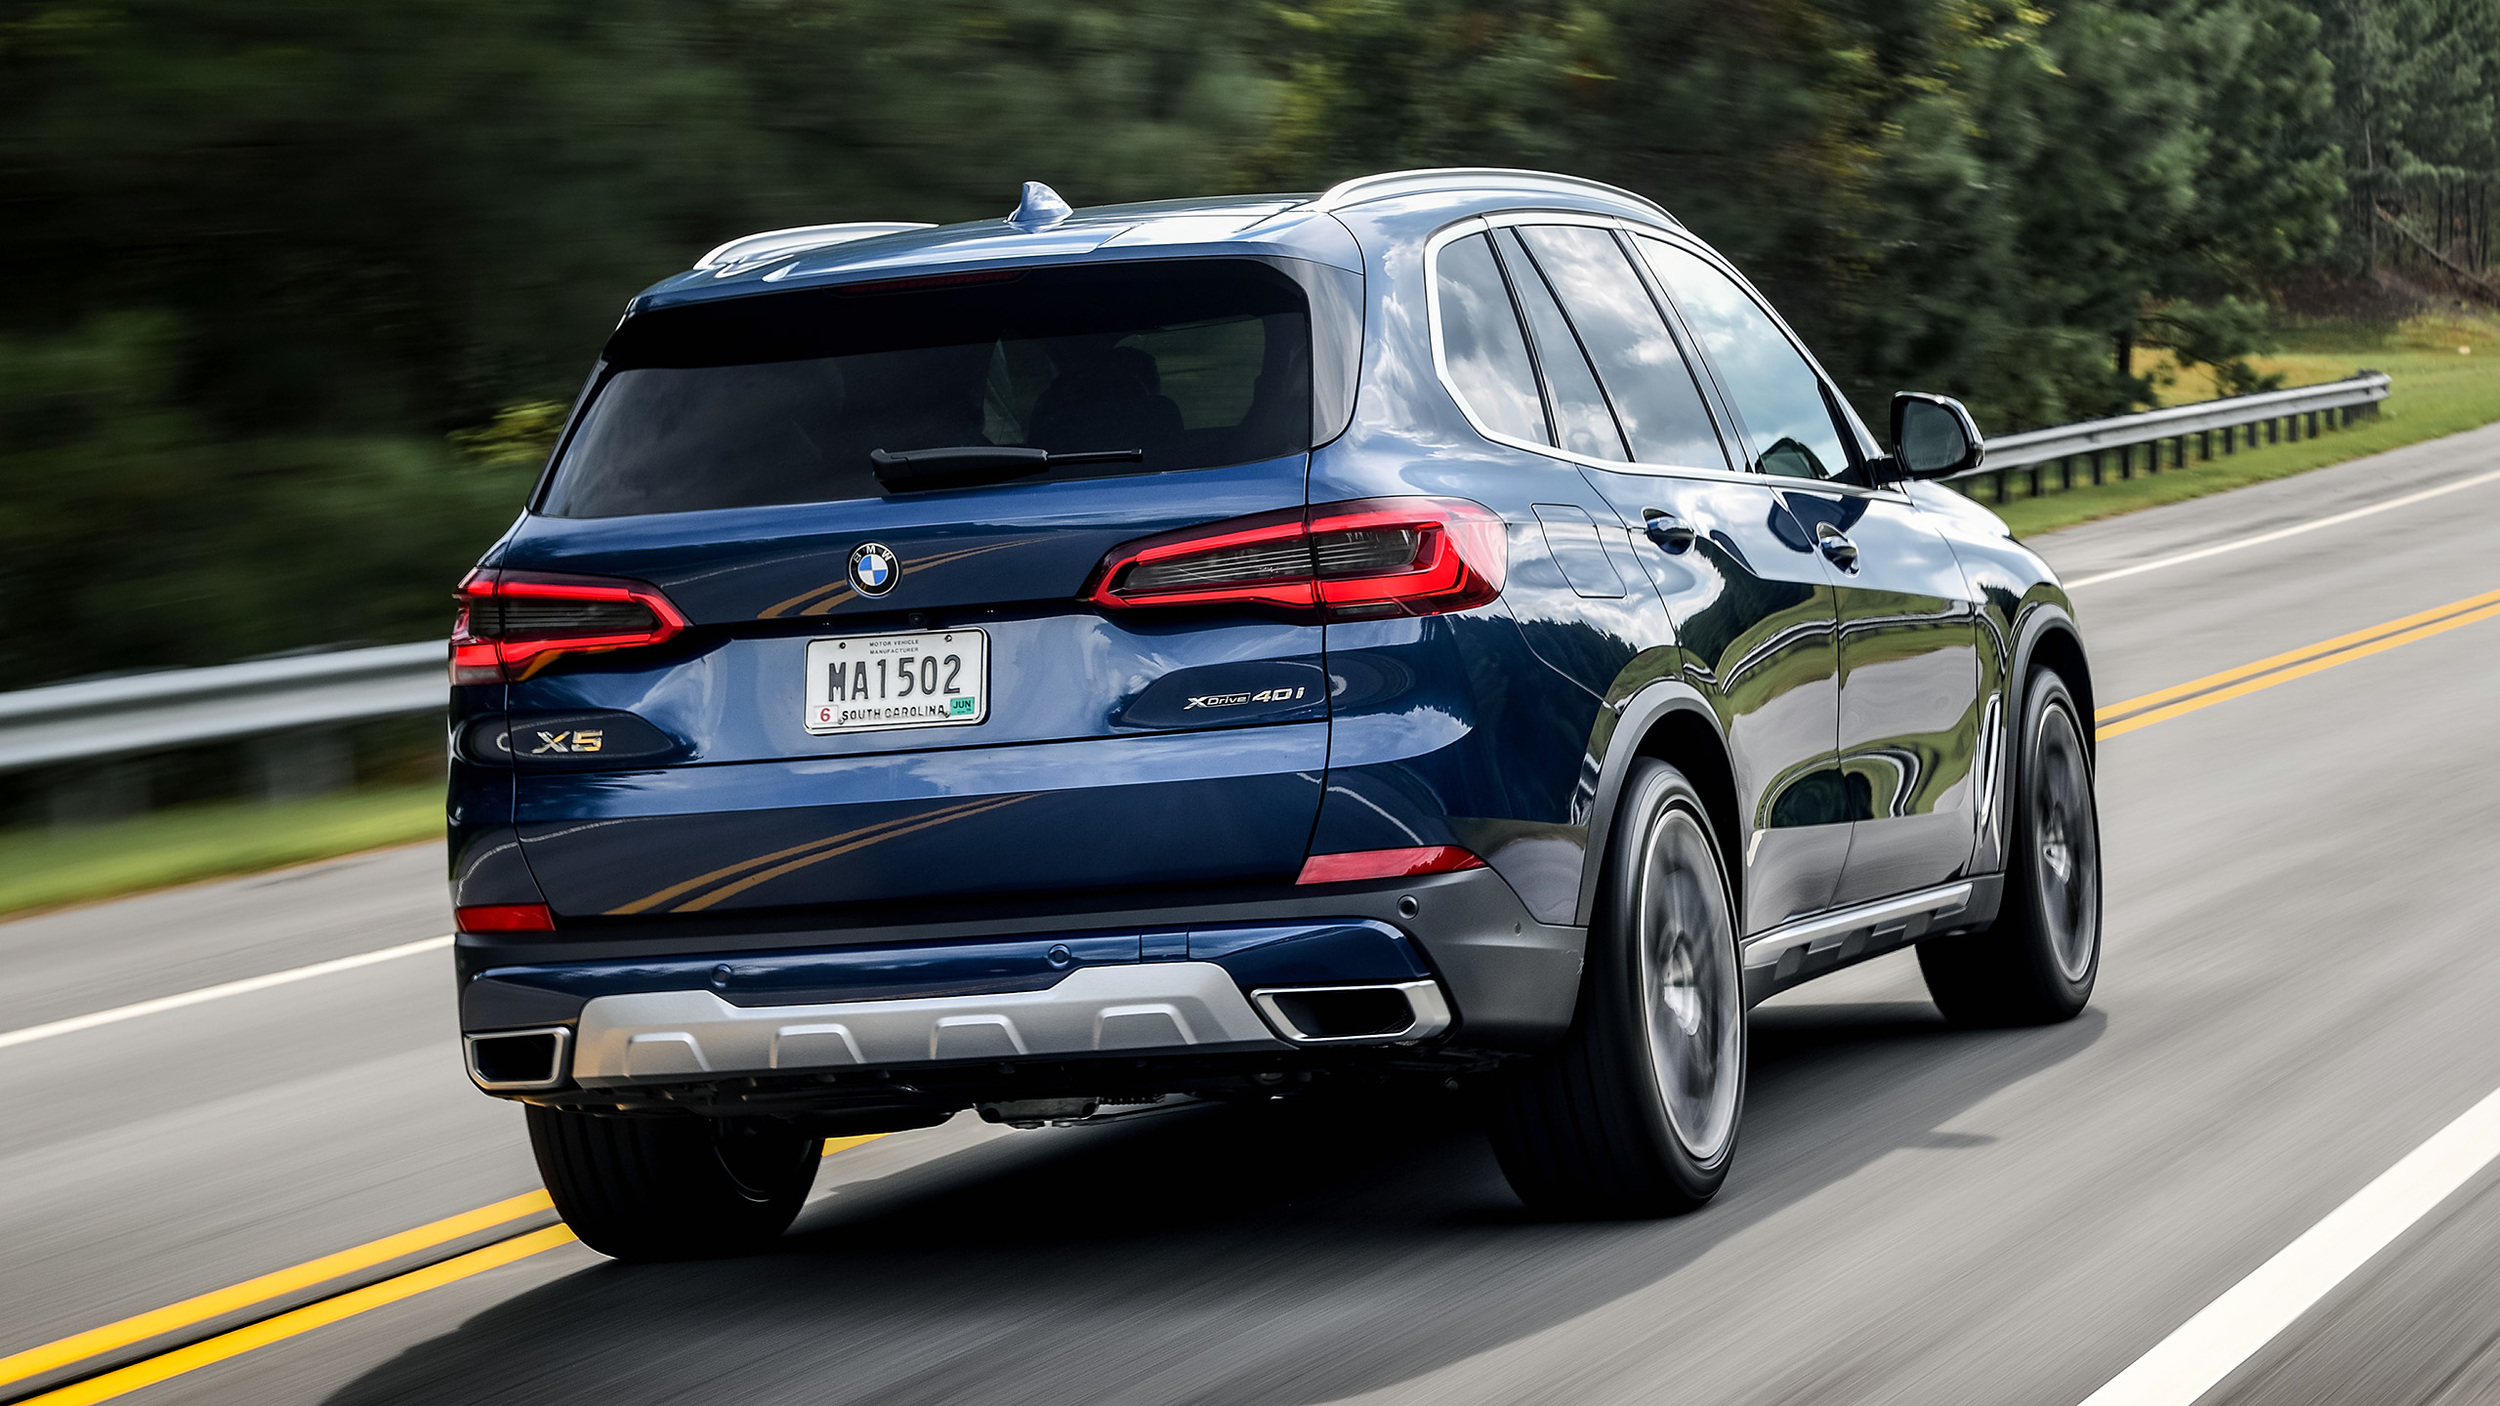 2019 BMW X5 xDrive40i quick spin review and rating | Autoblog